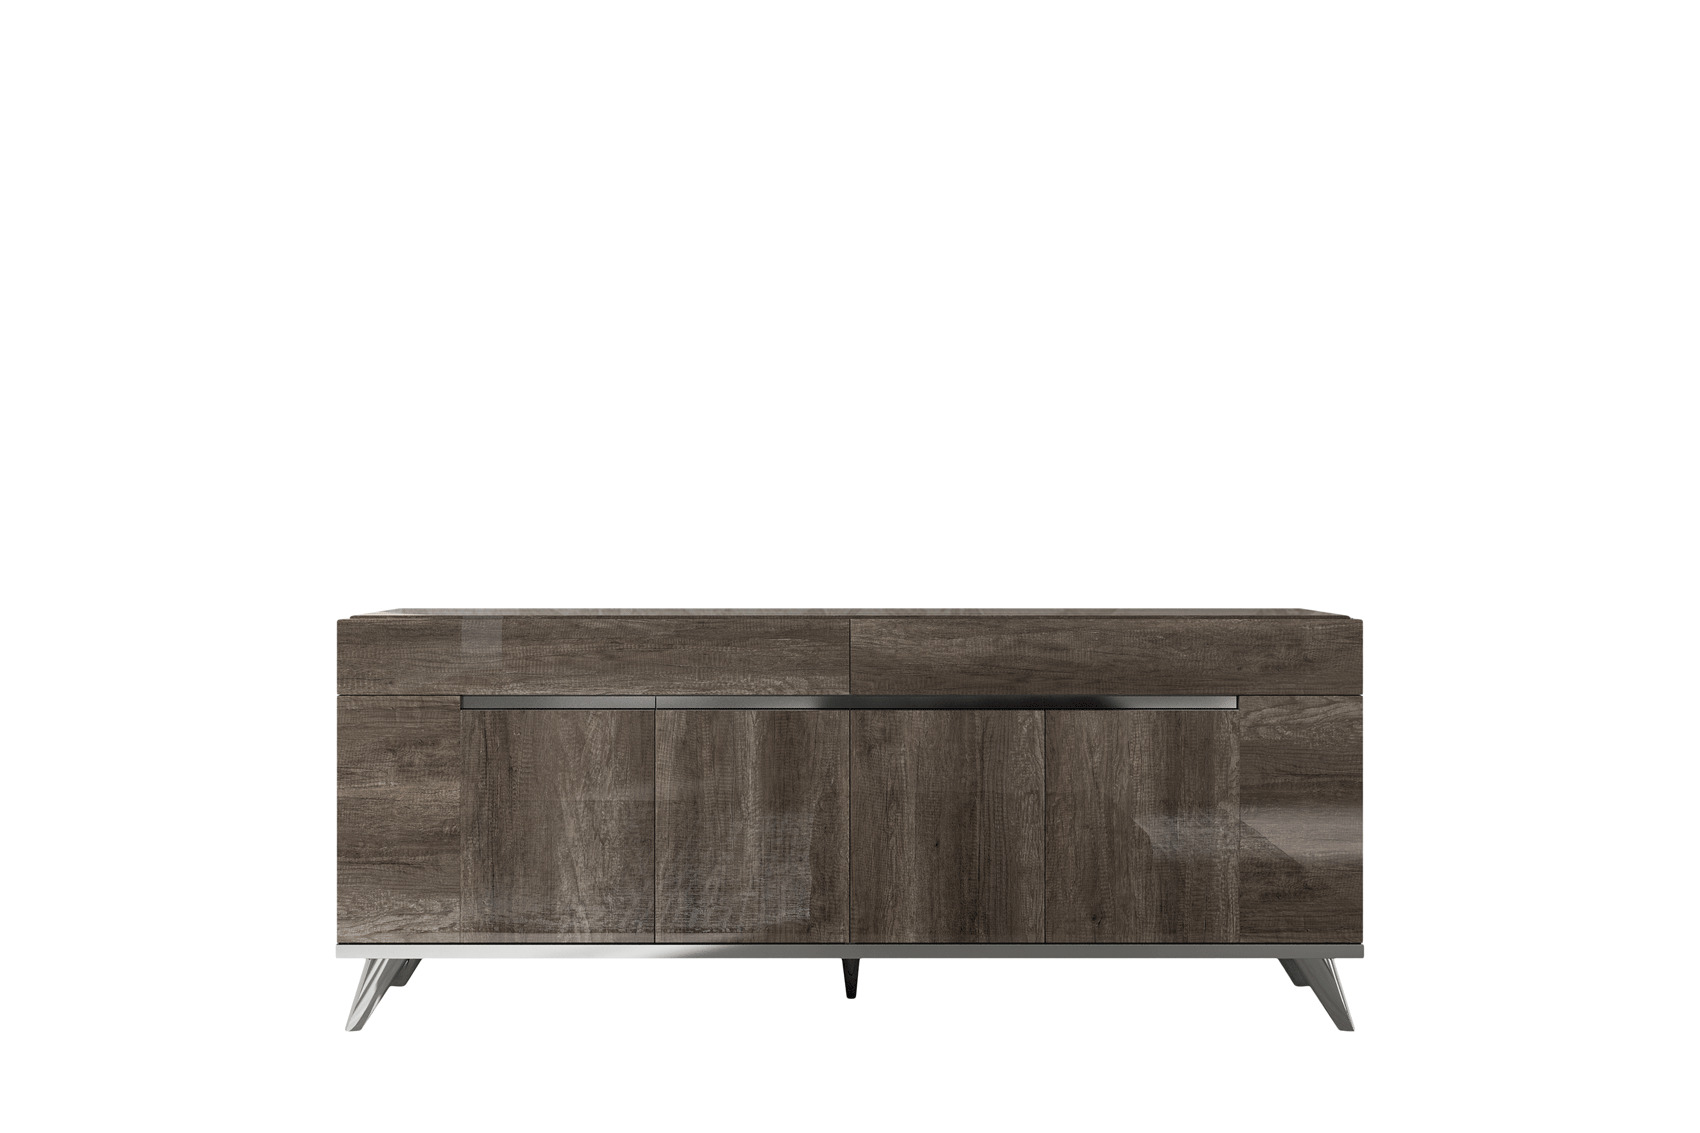 Exotic Rectangular in Wood Top Leather Dining Room Furniture - Click Image to Close